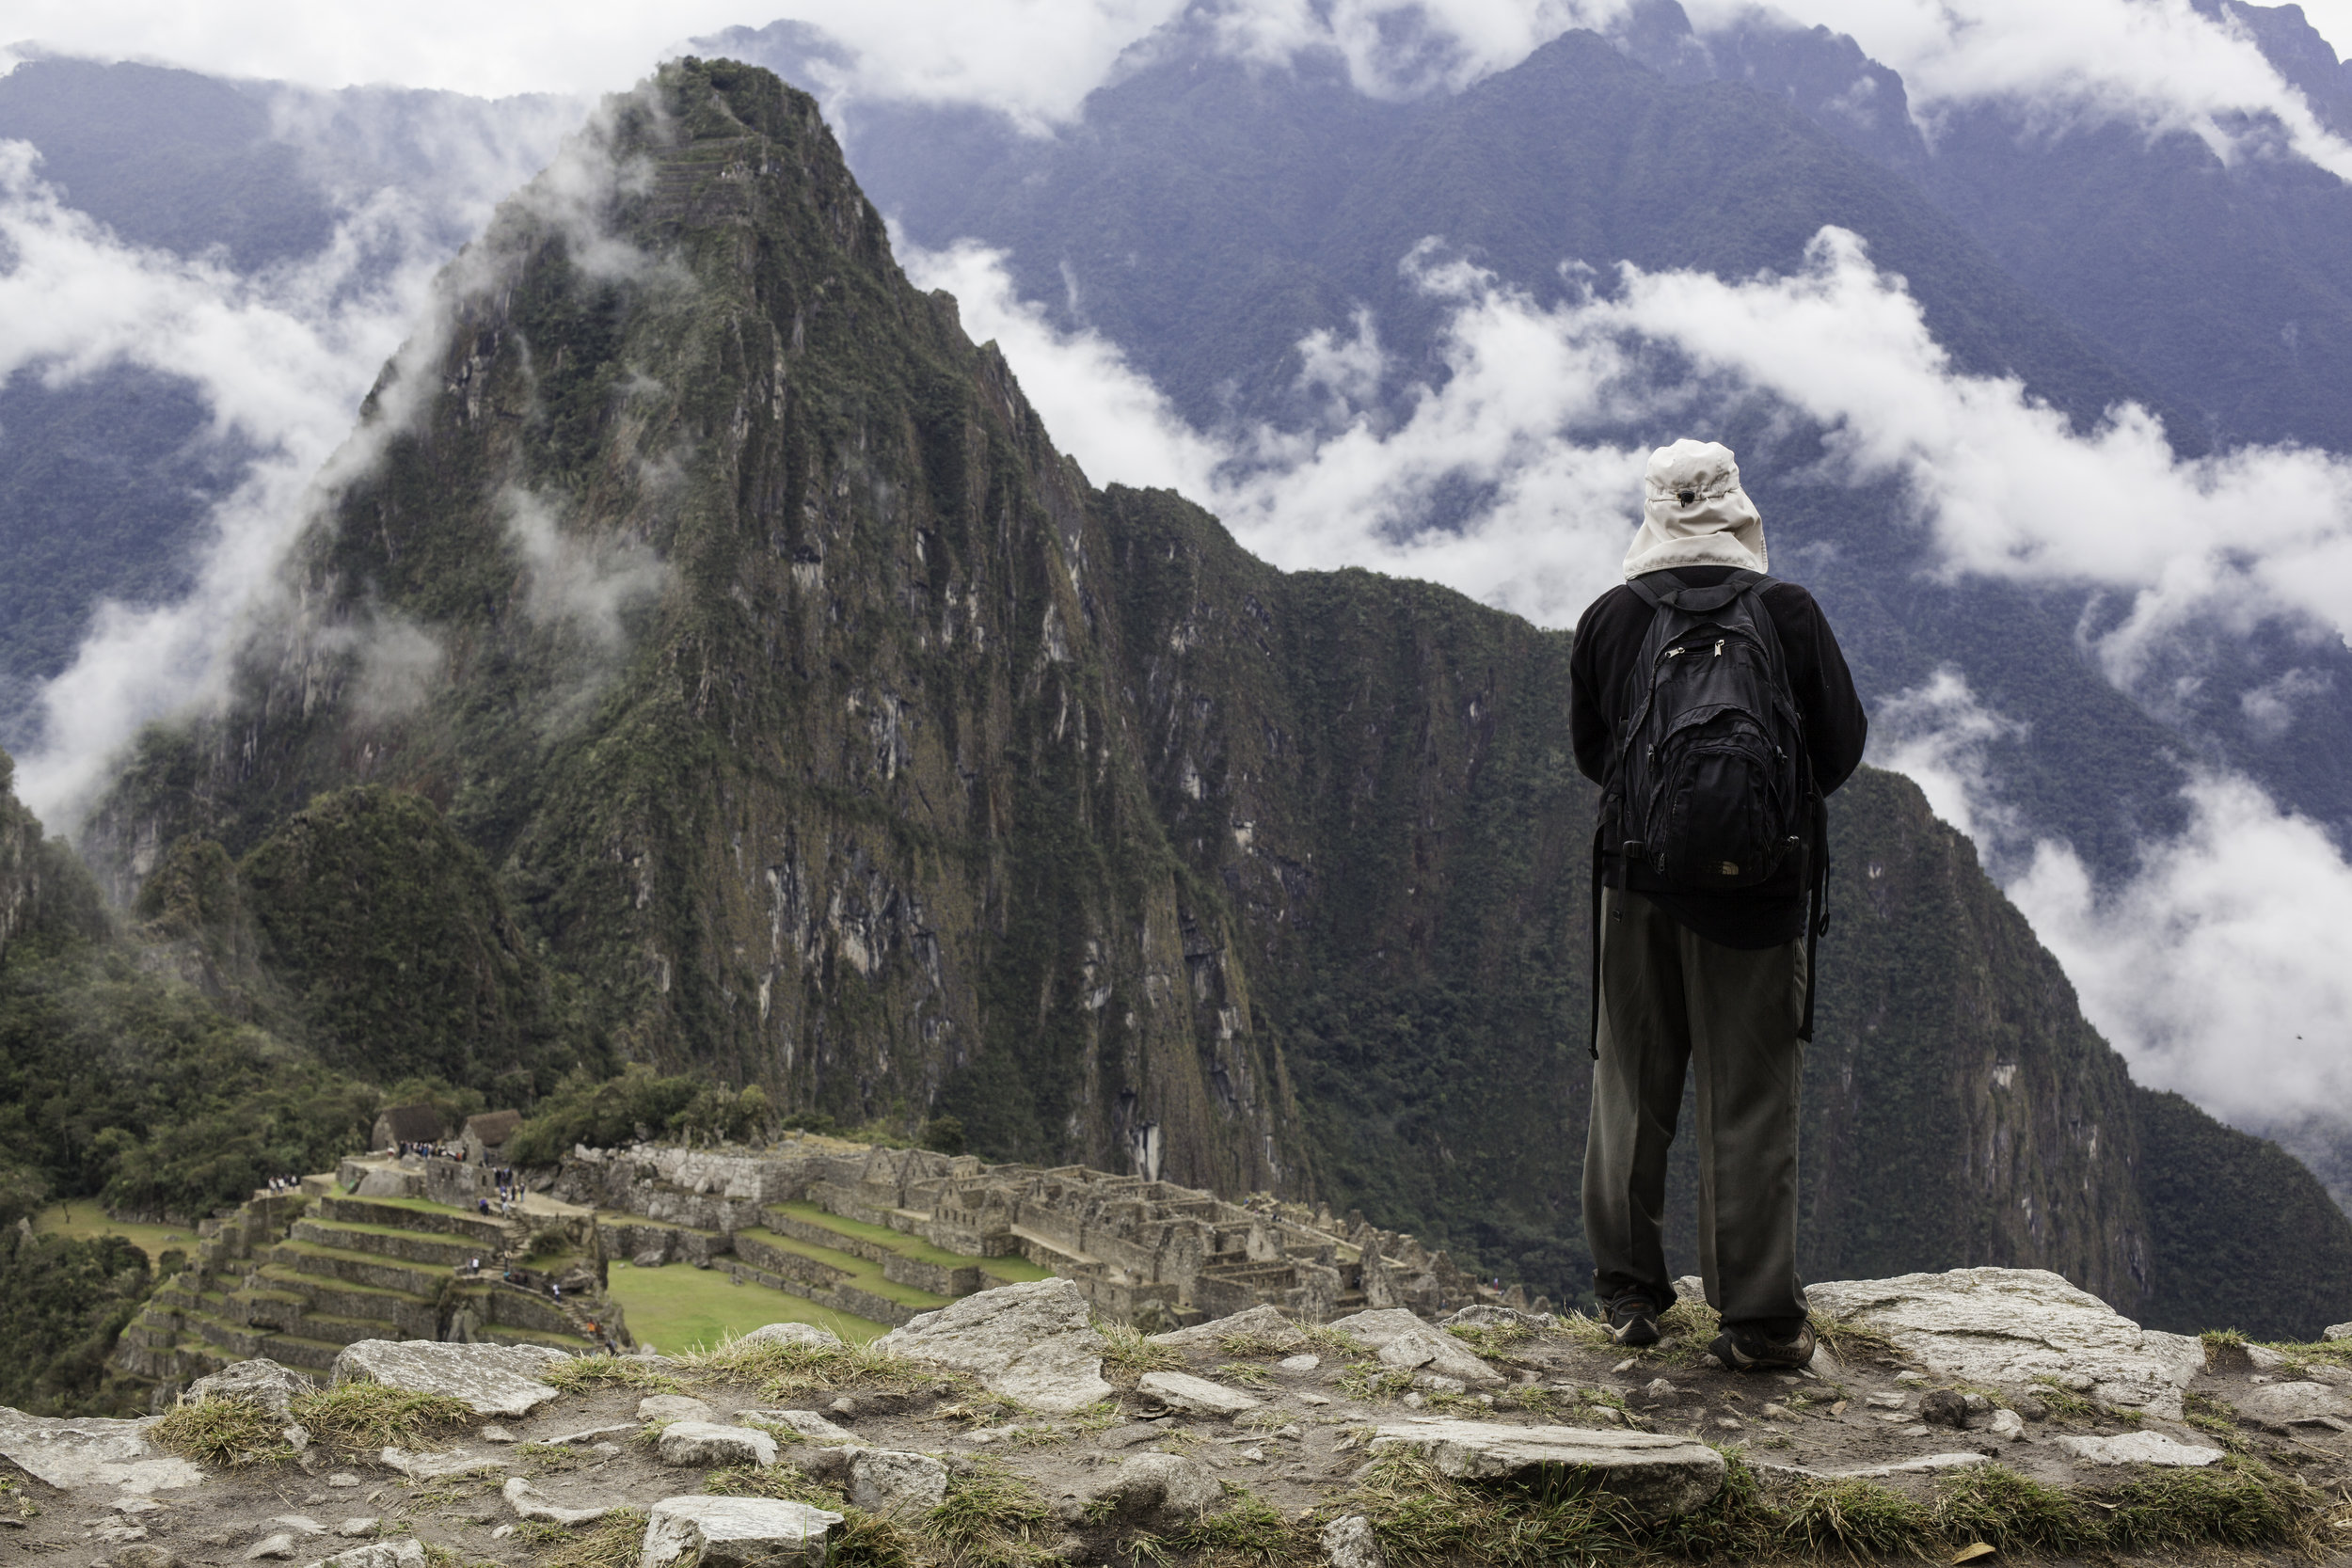 A hiker looks down on the impressive Machu Picchu.